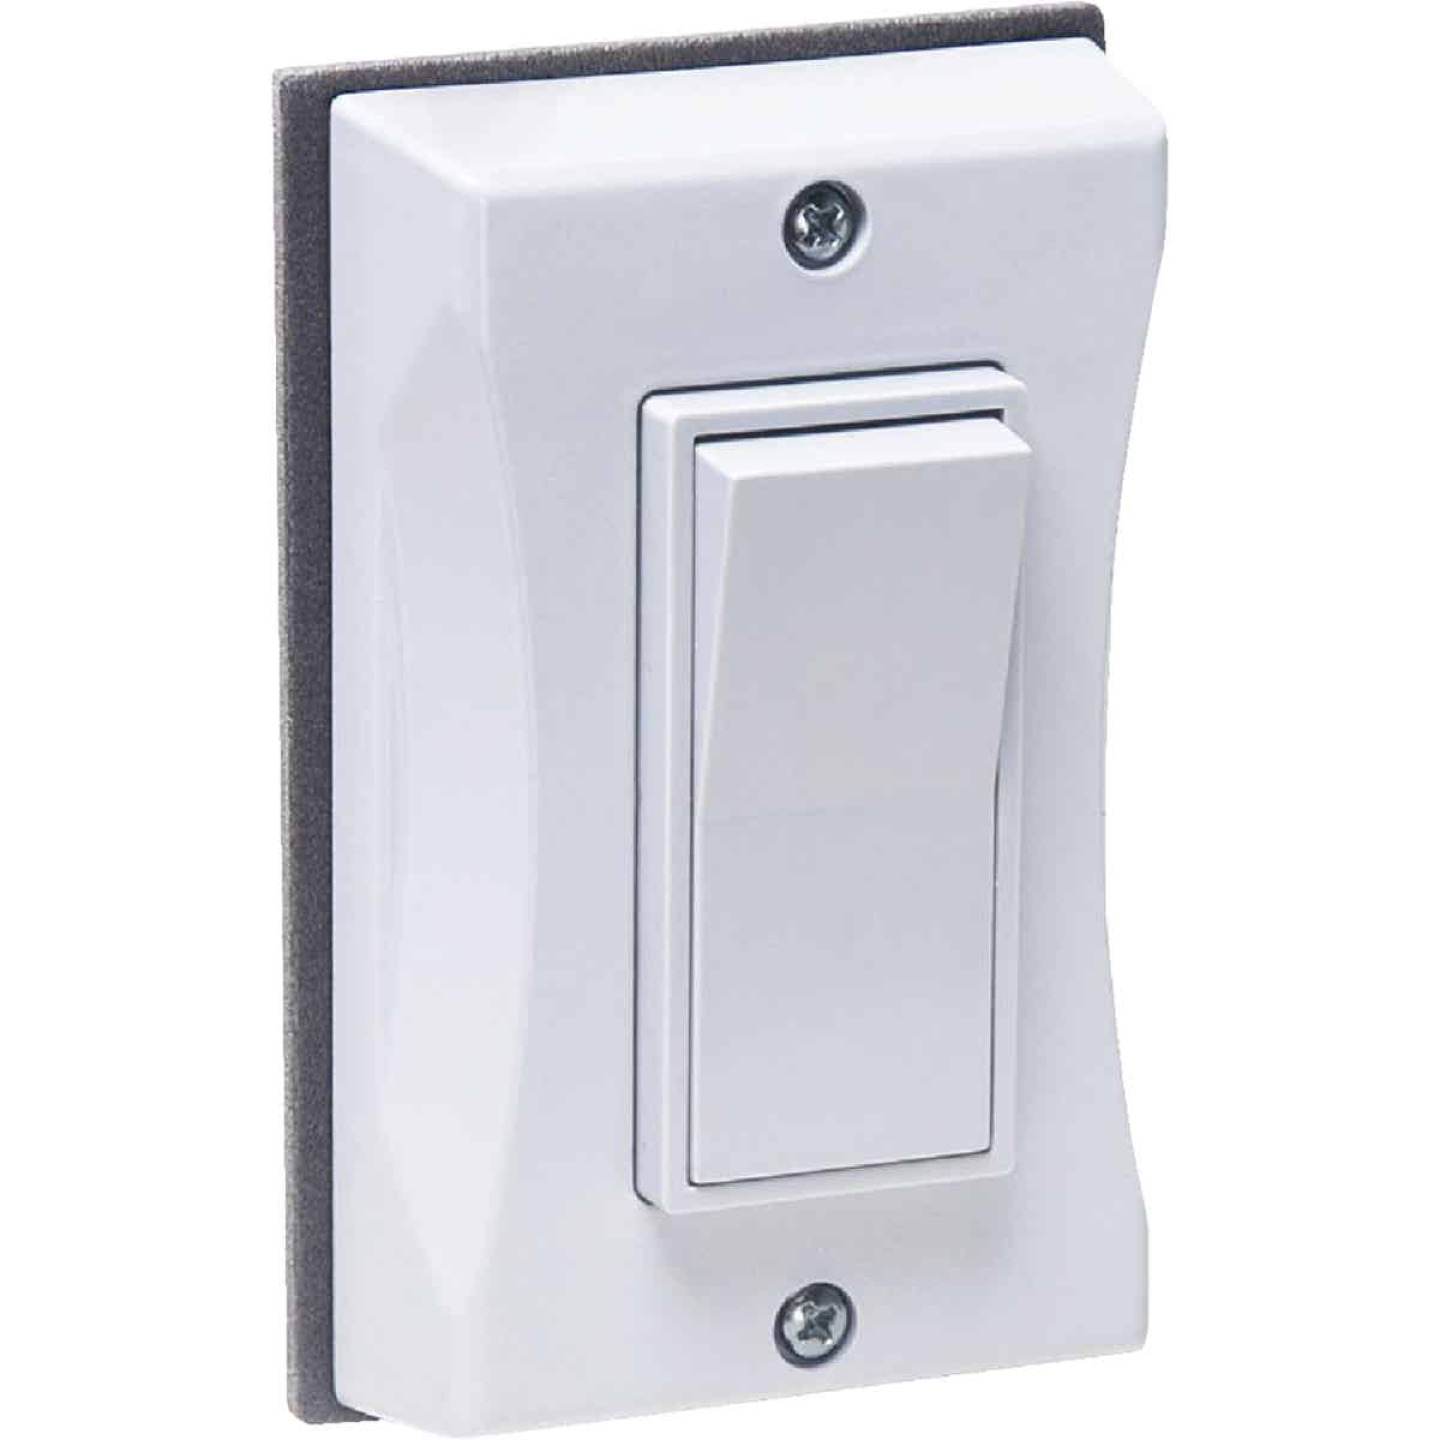 Bell Single Gang Vertical Mount White Weatherproof Outdoor Rocker Switch Cover Image 1